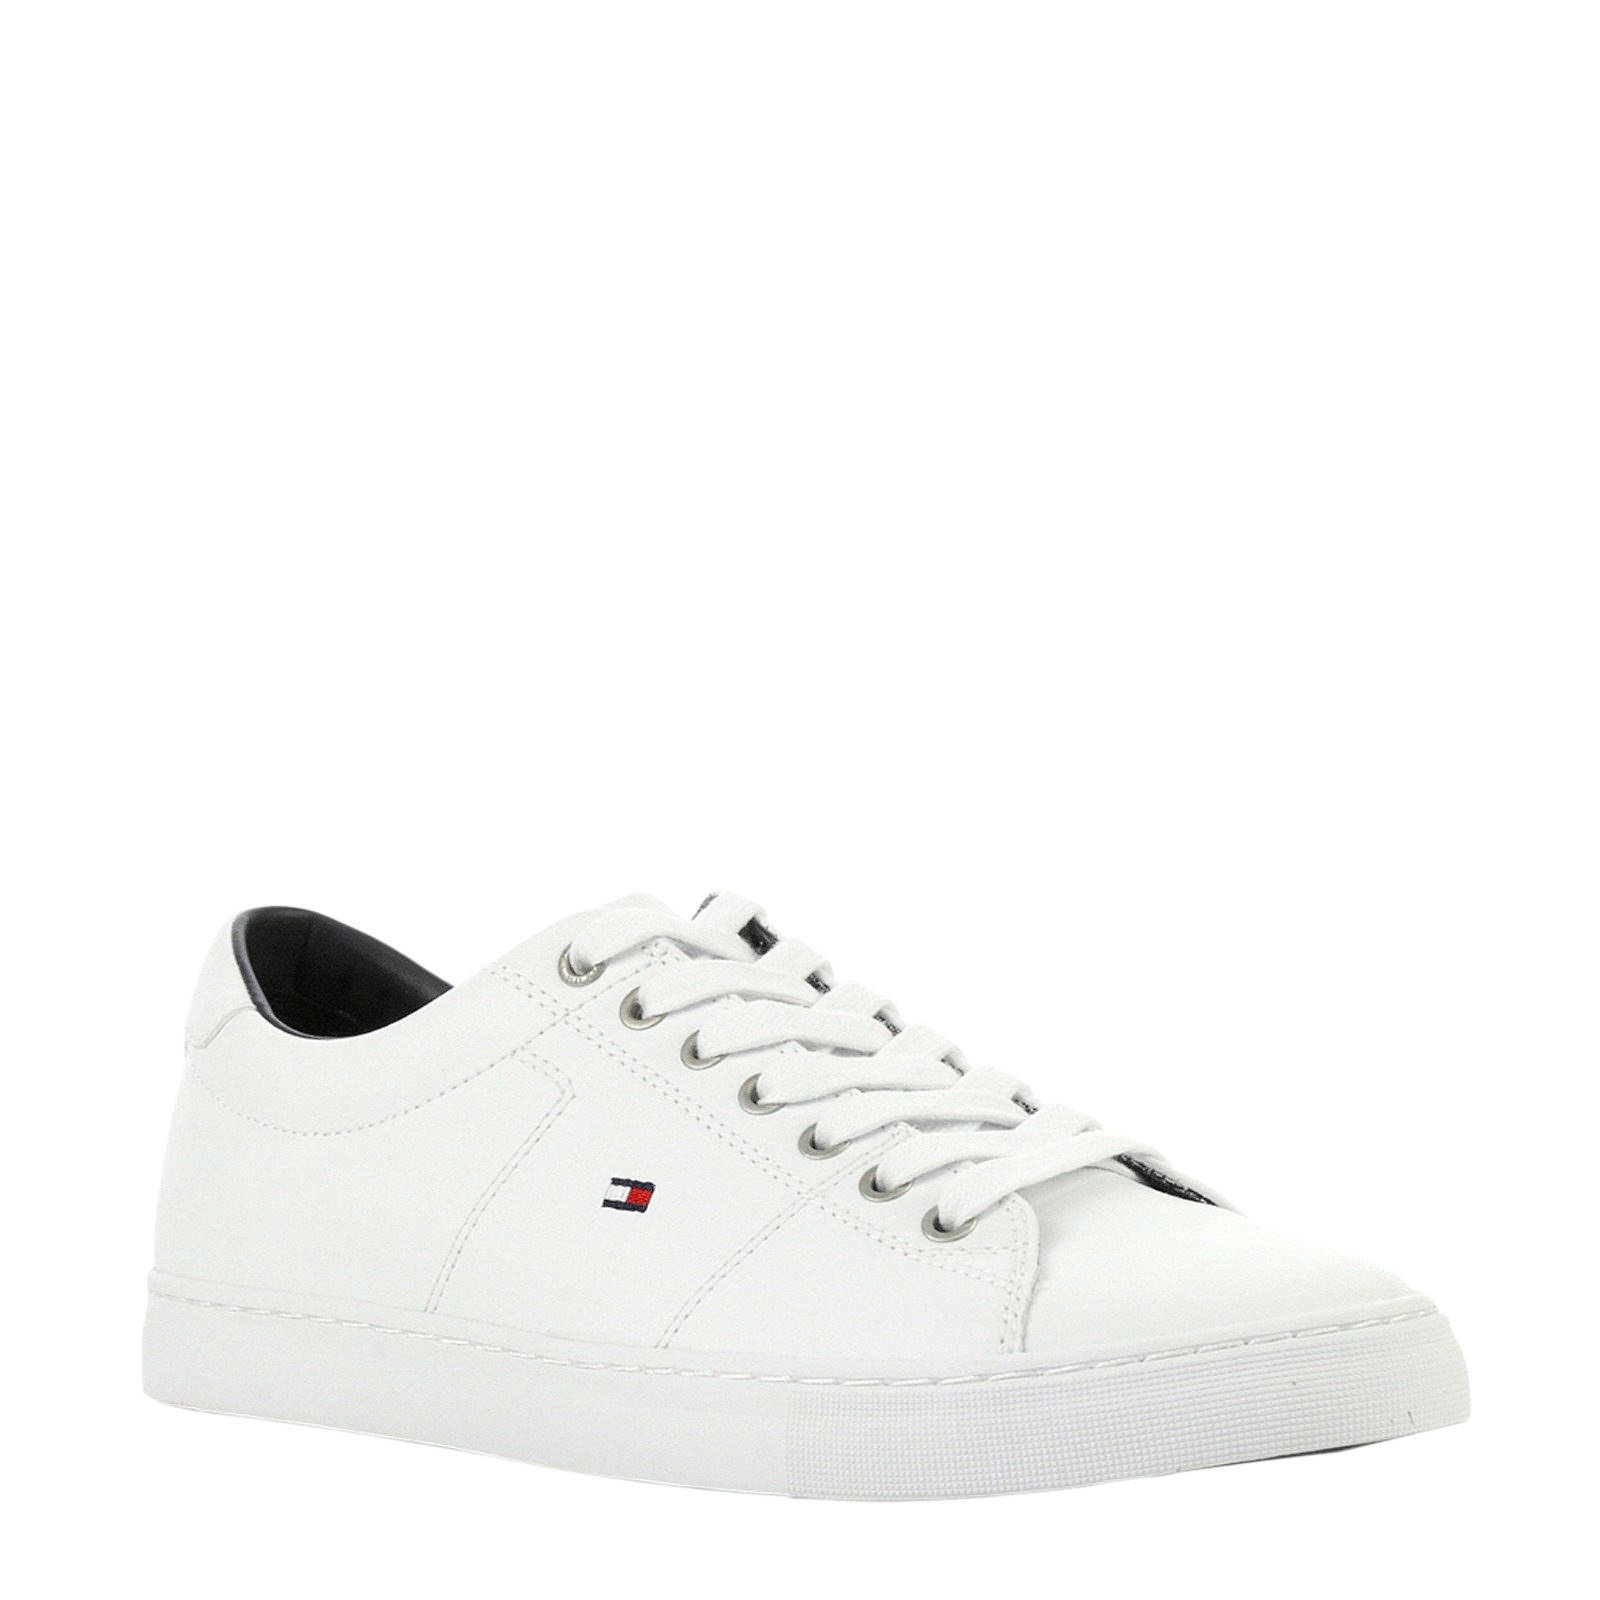 Tommy Hilfiger Veterschoen Dames Wit